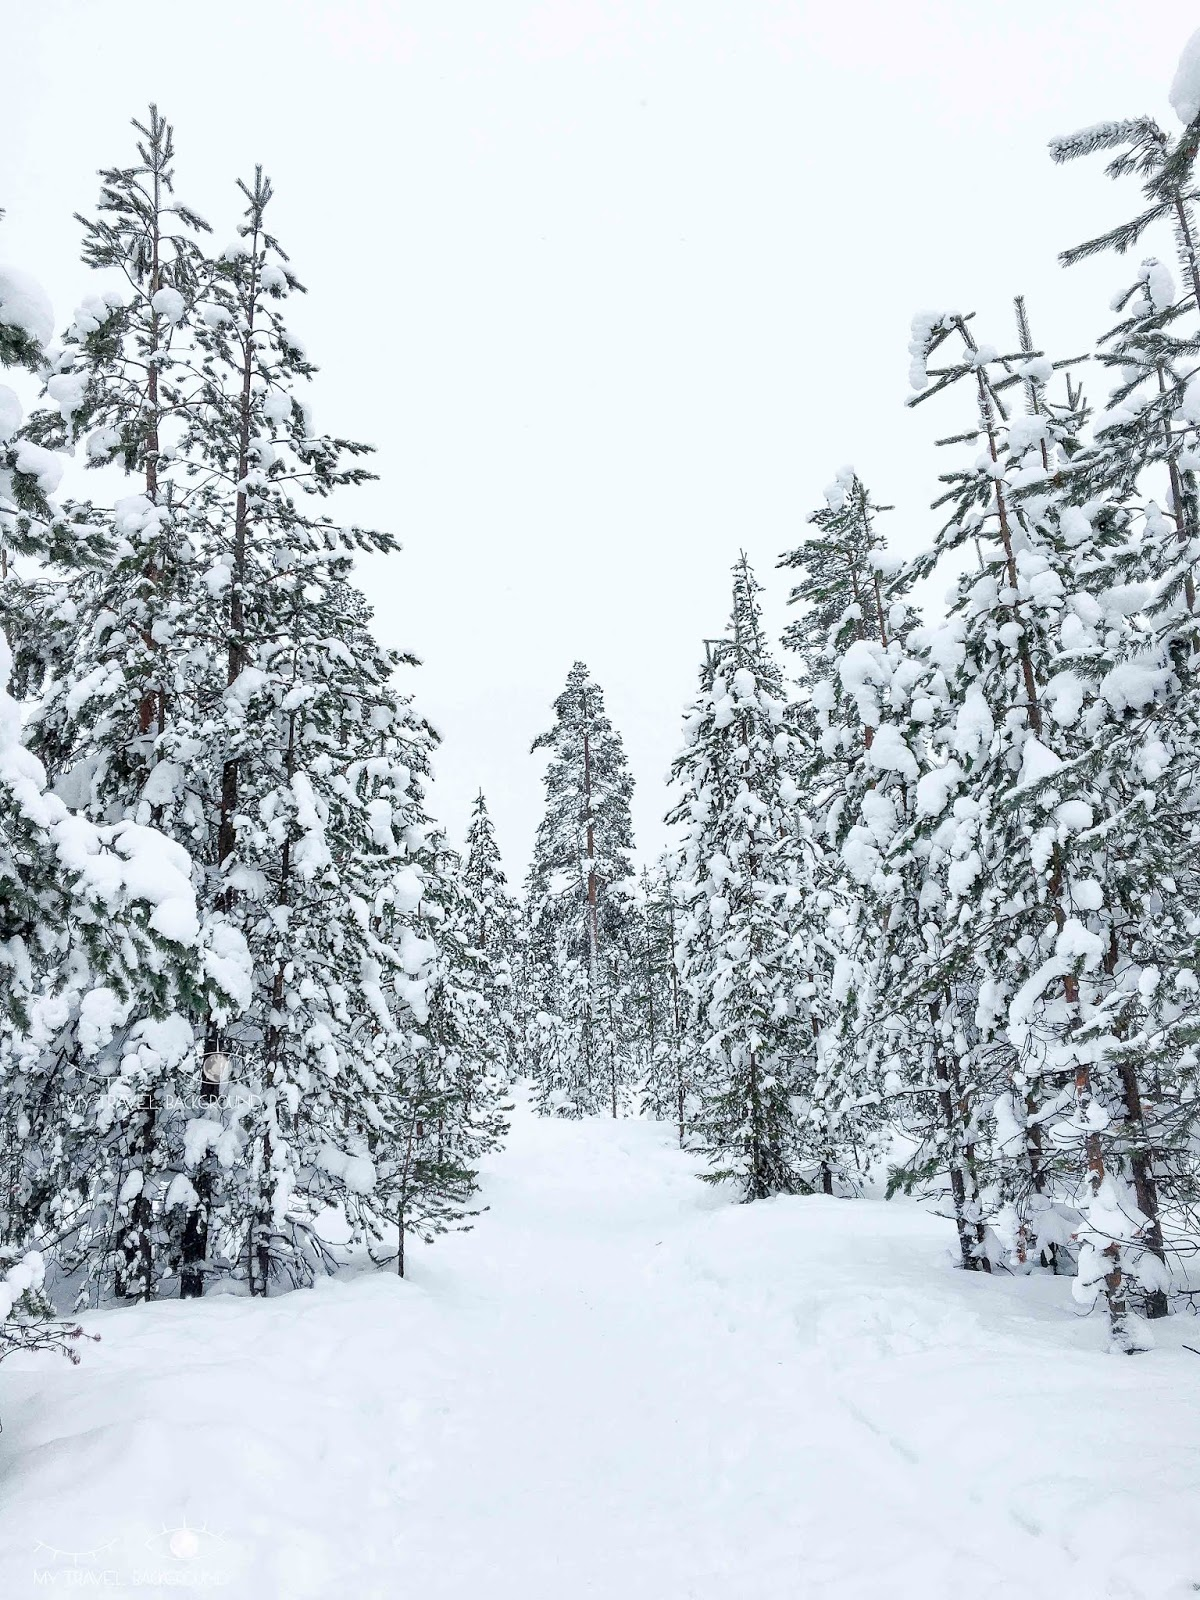 My Travel Background : Que faire à Rovaniemi en Laponie ? Foret boreale